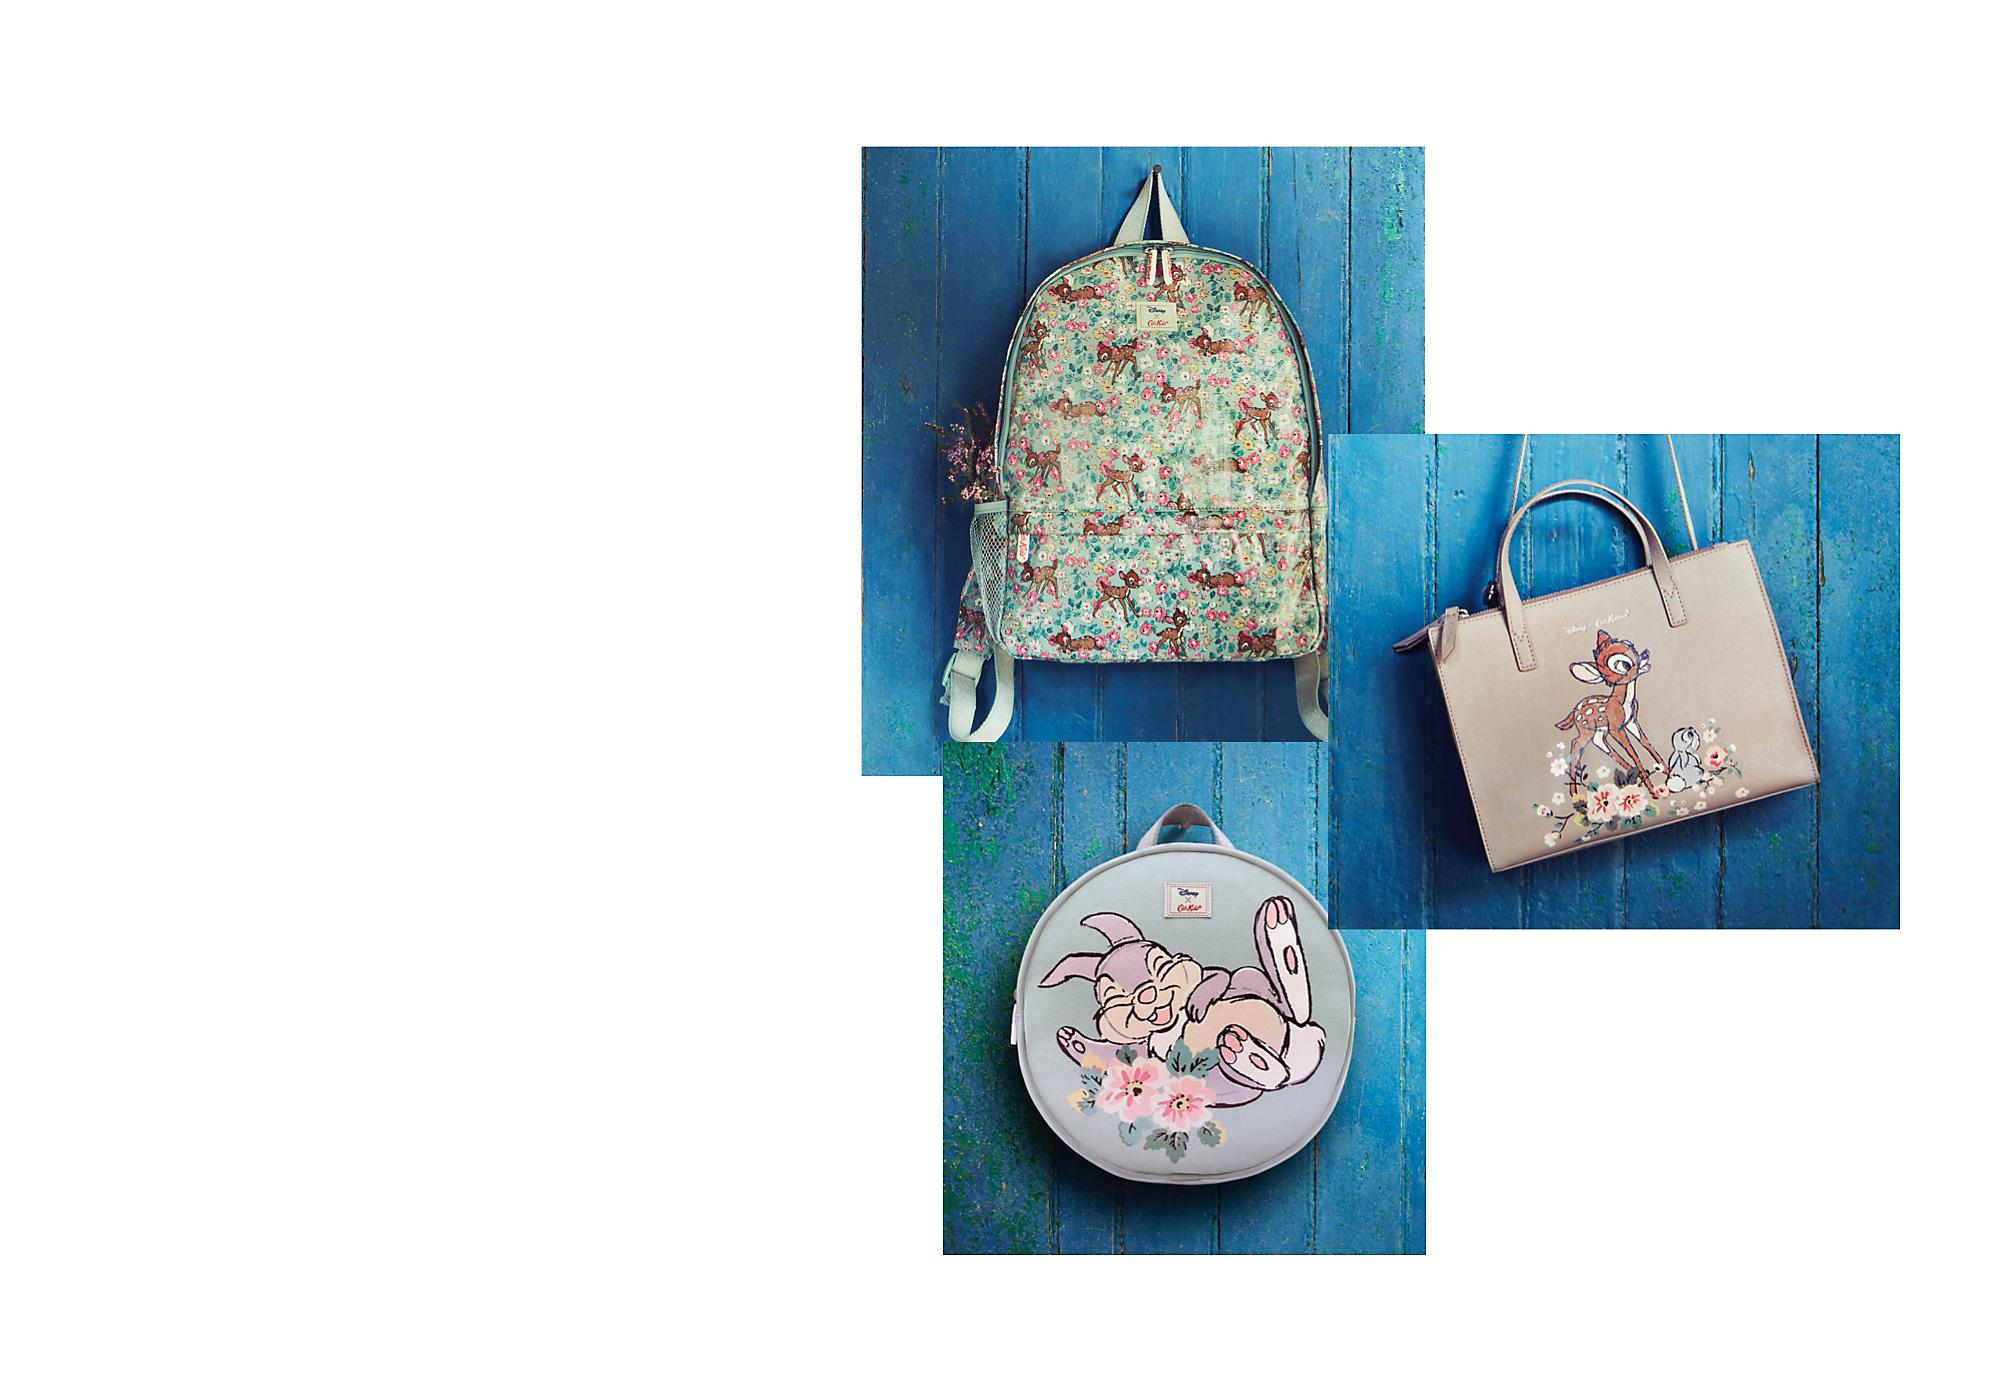 Fawn Over It Discover our enchanting Cath Kidston x Disney Bambi collection of clothing, accessories, homeware and more.